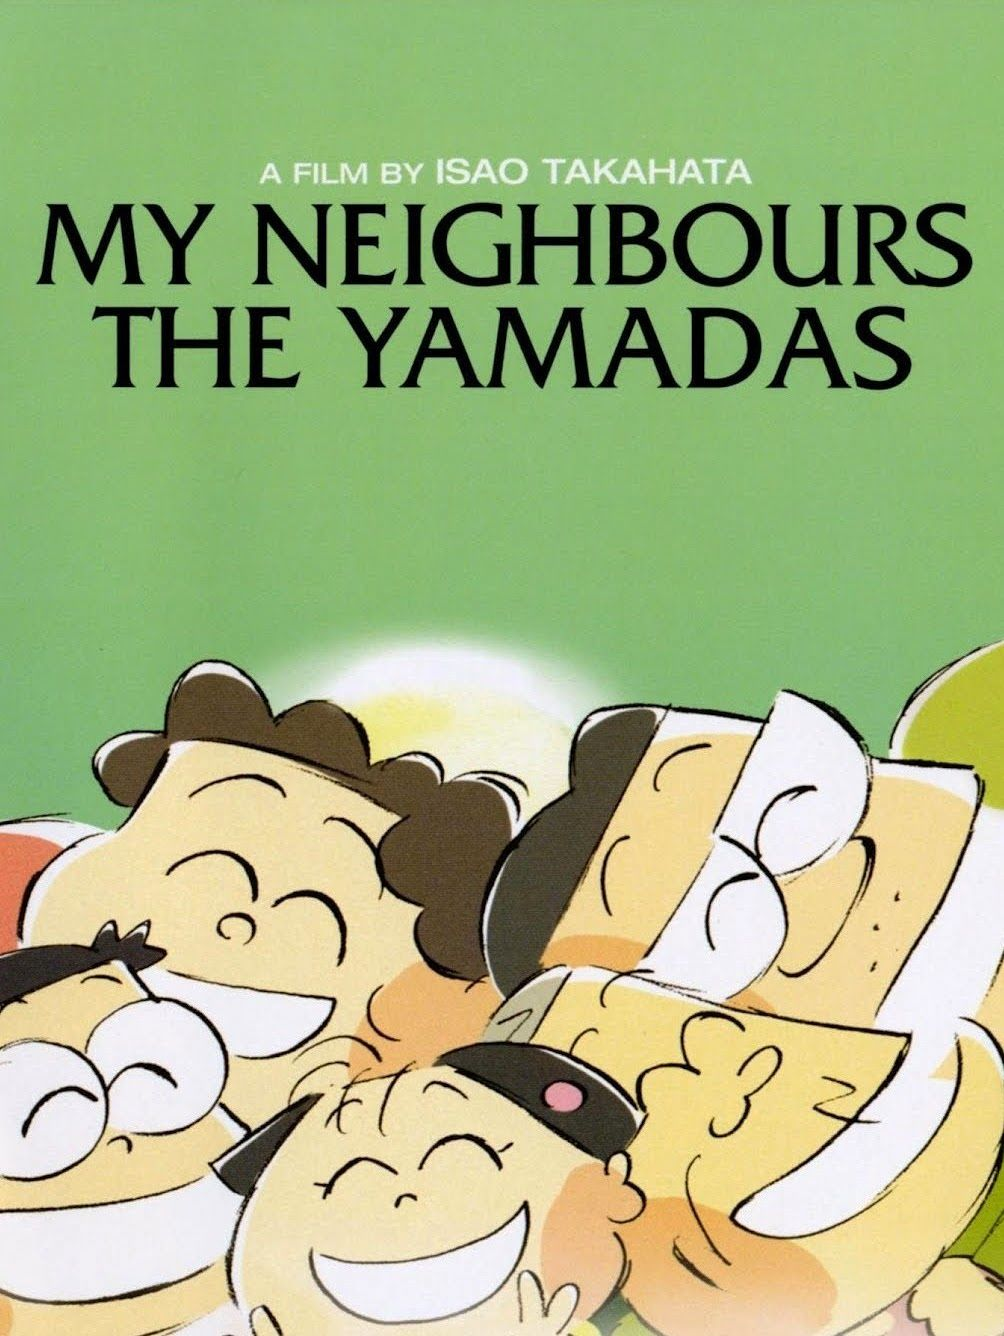 My Neighbors the Yamadas Poster